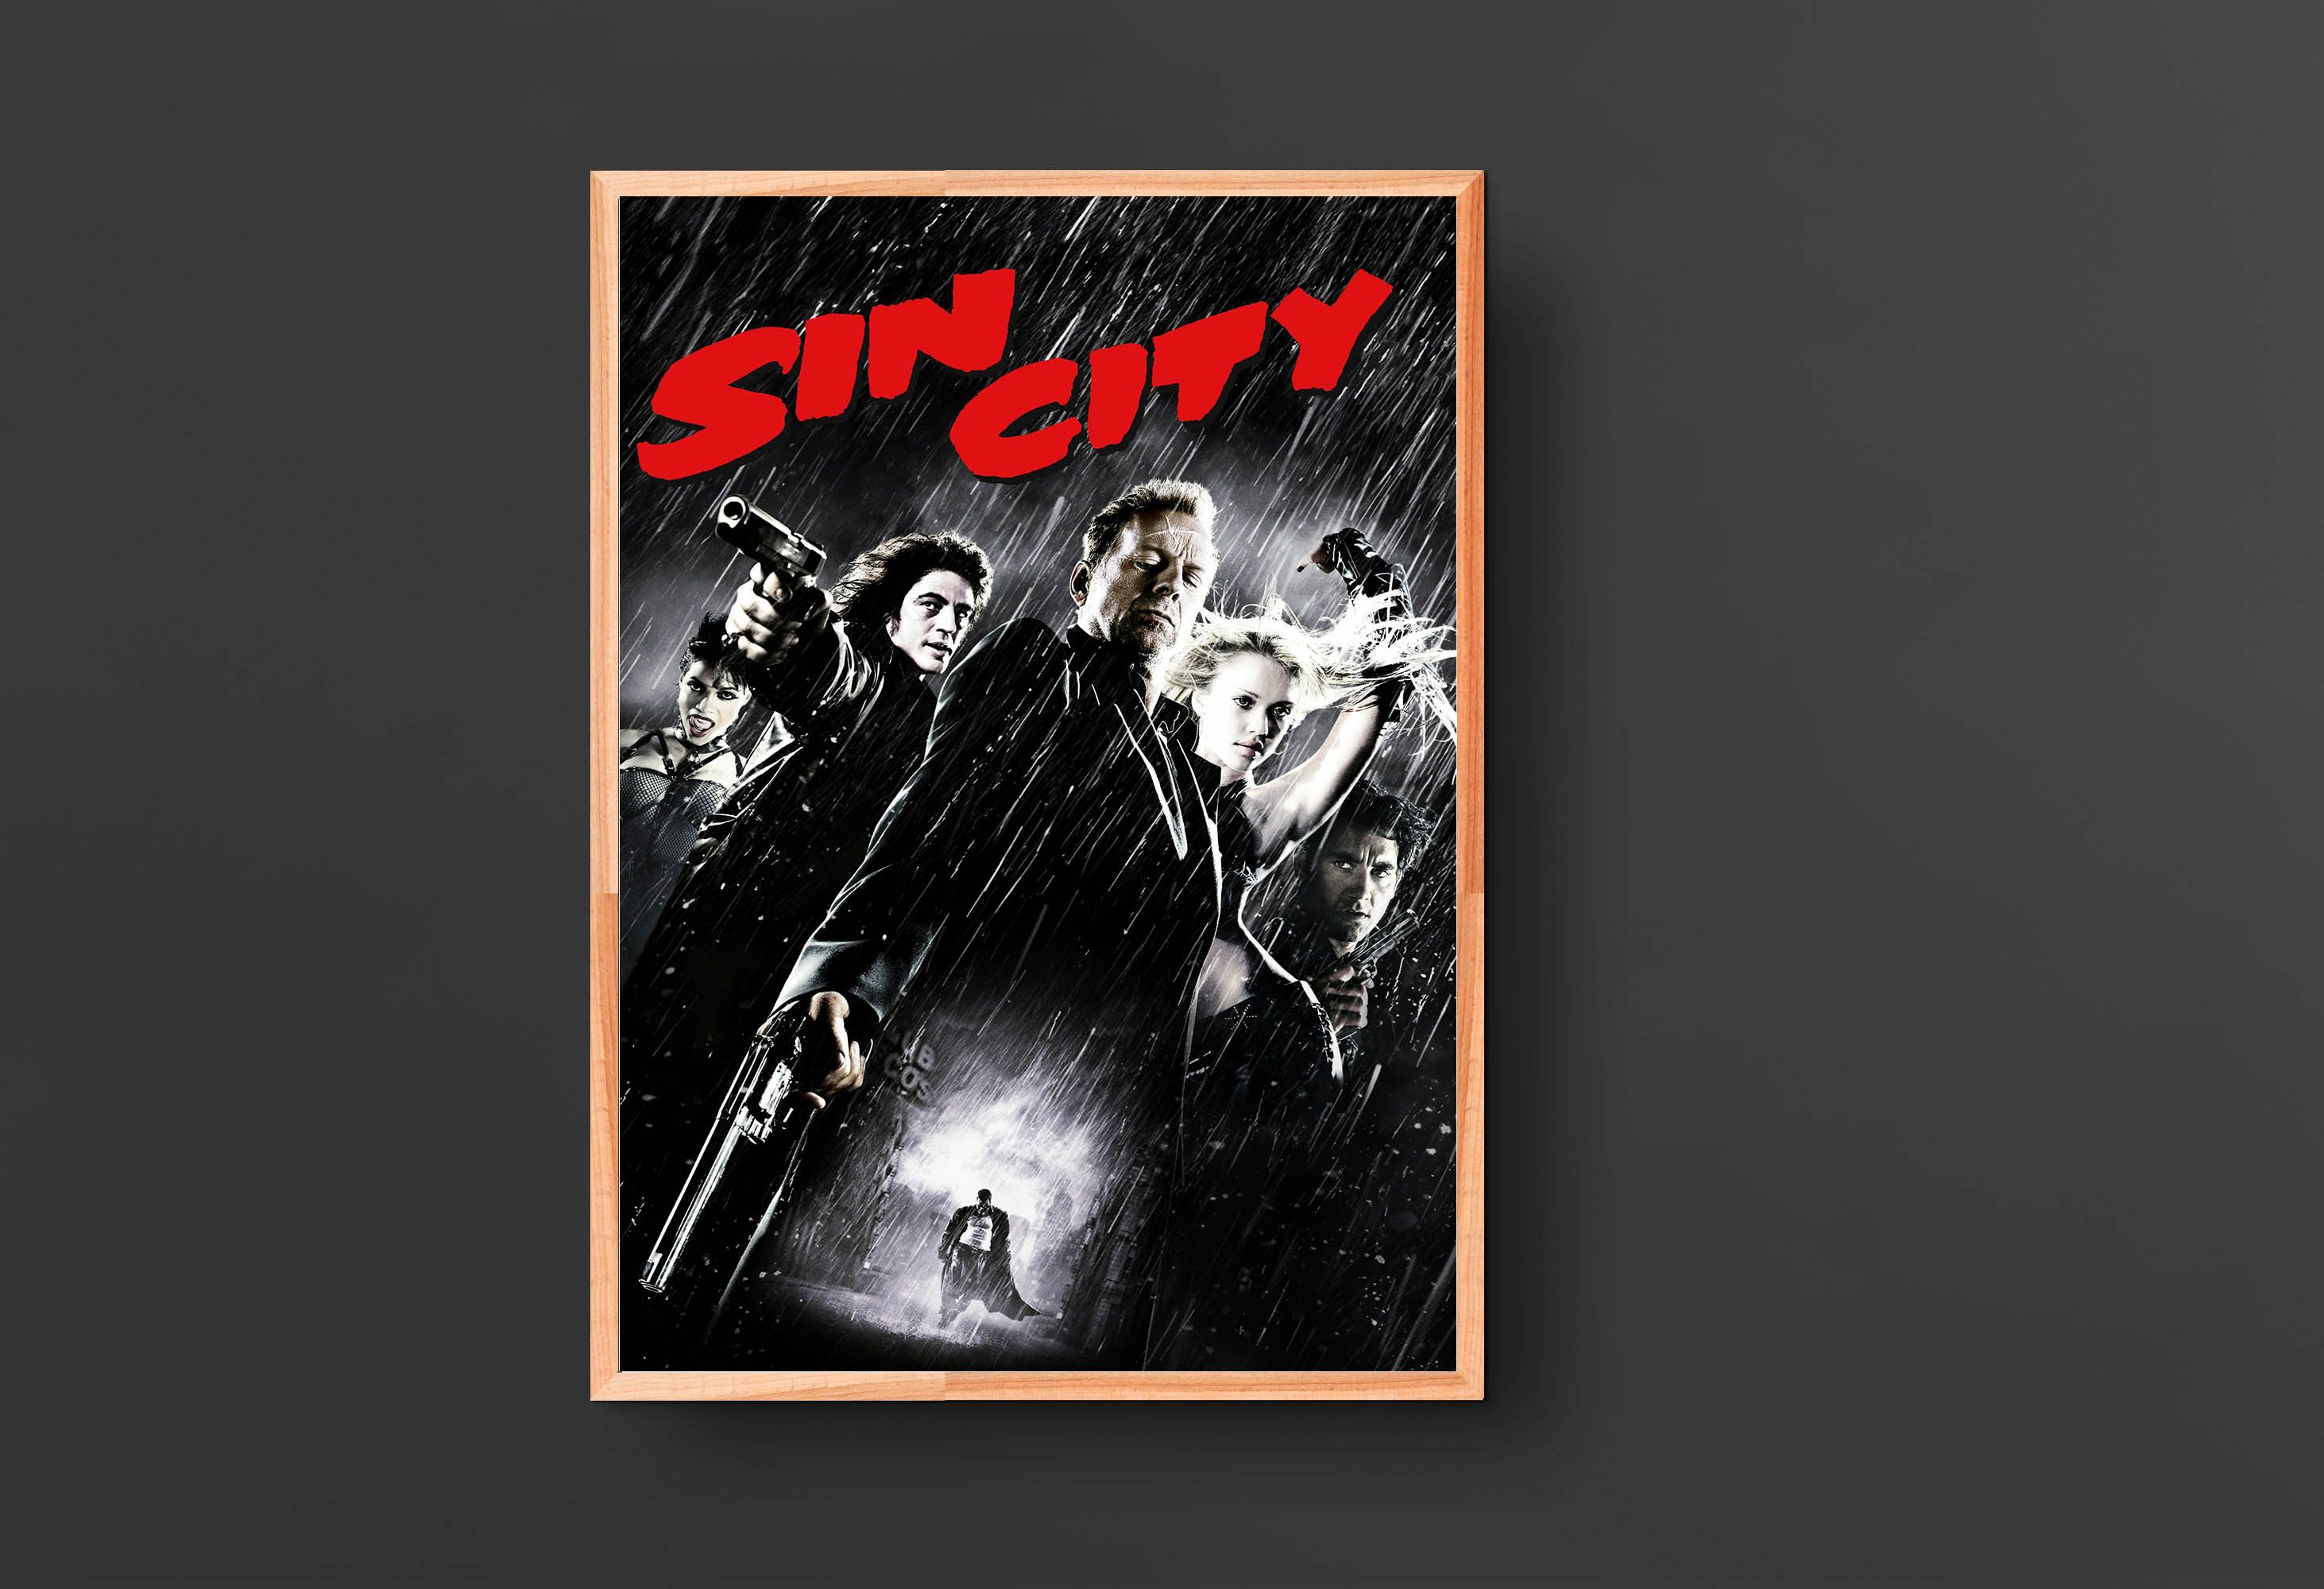 Sin City Movie Poster 2005 In 2020 Sin City Movie Movie Posters Classic Movie Posters